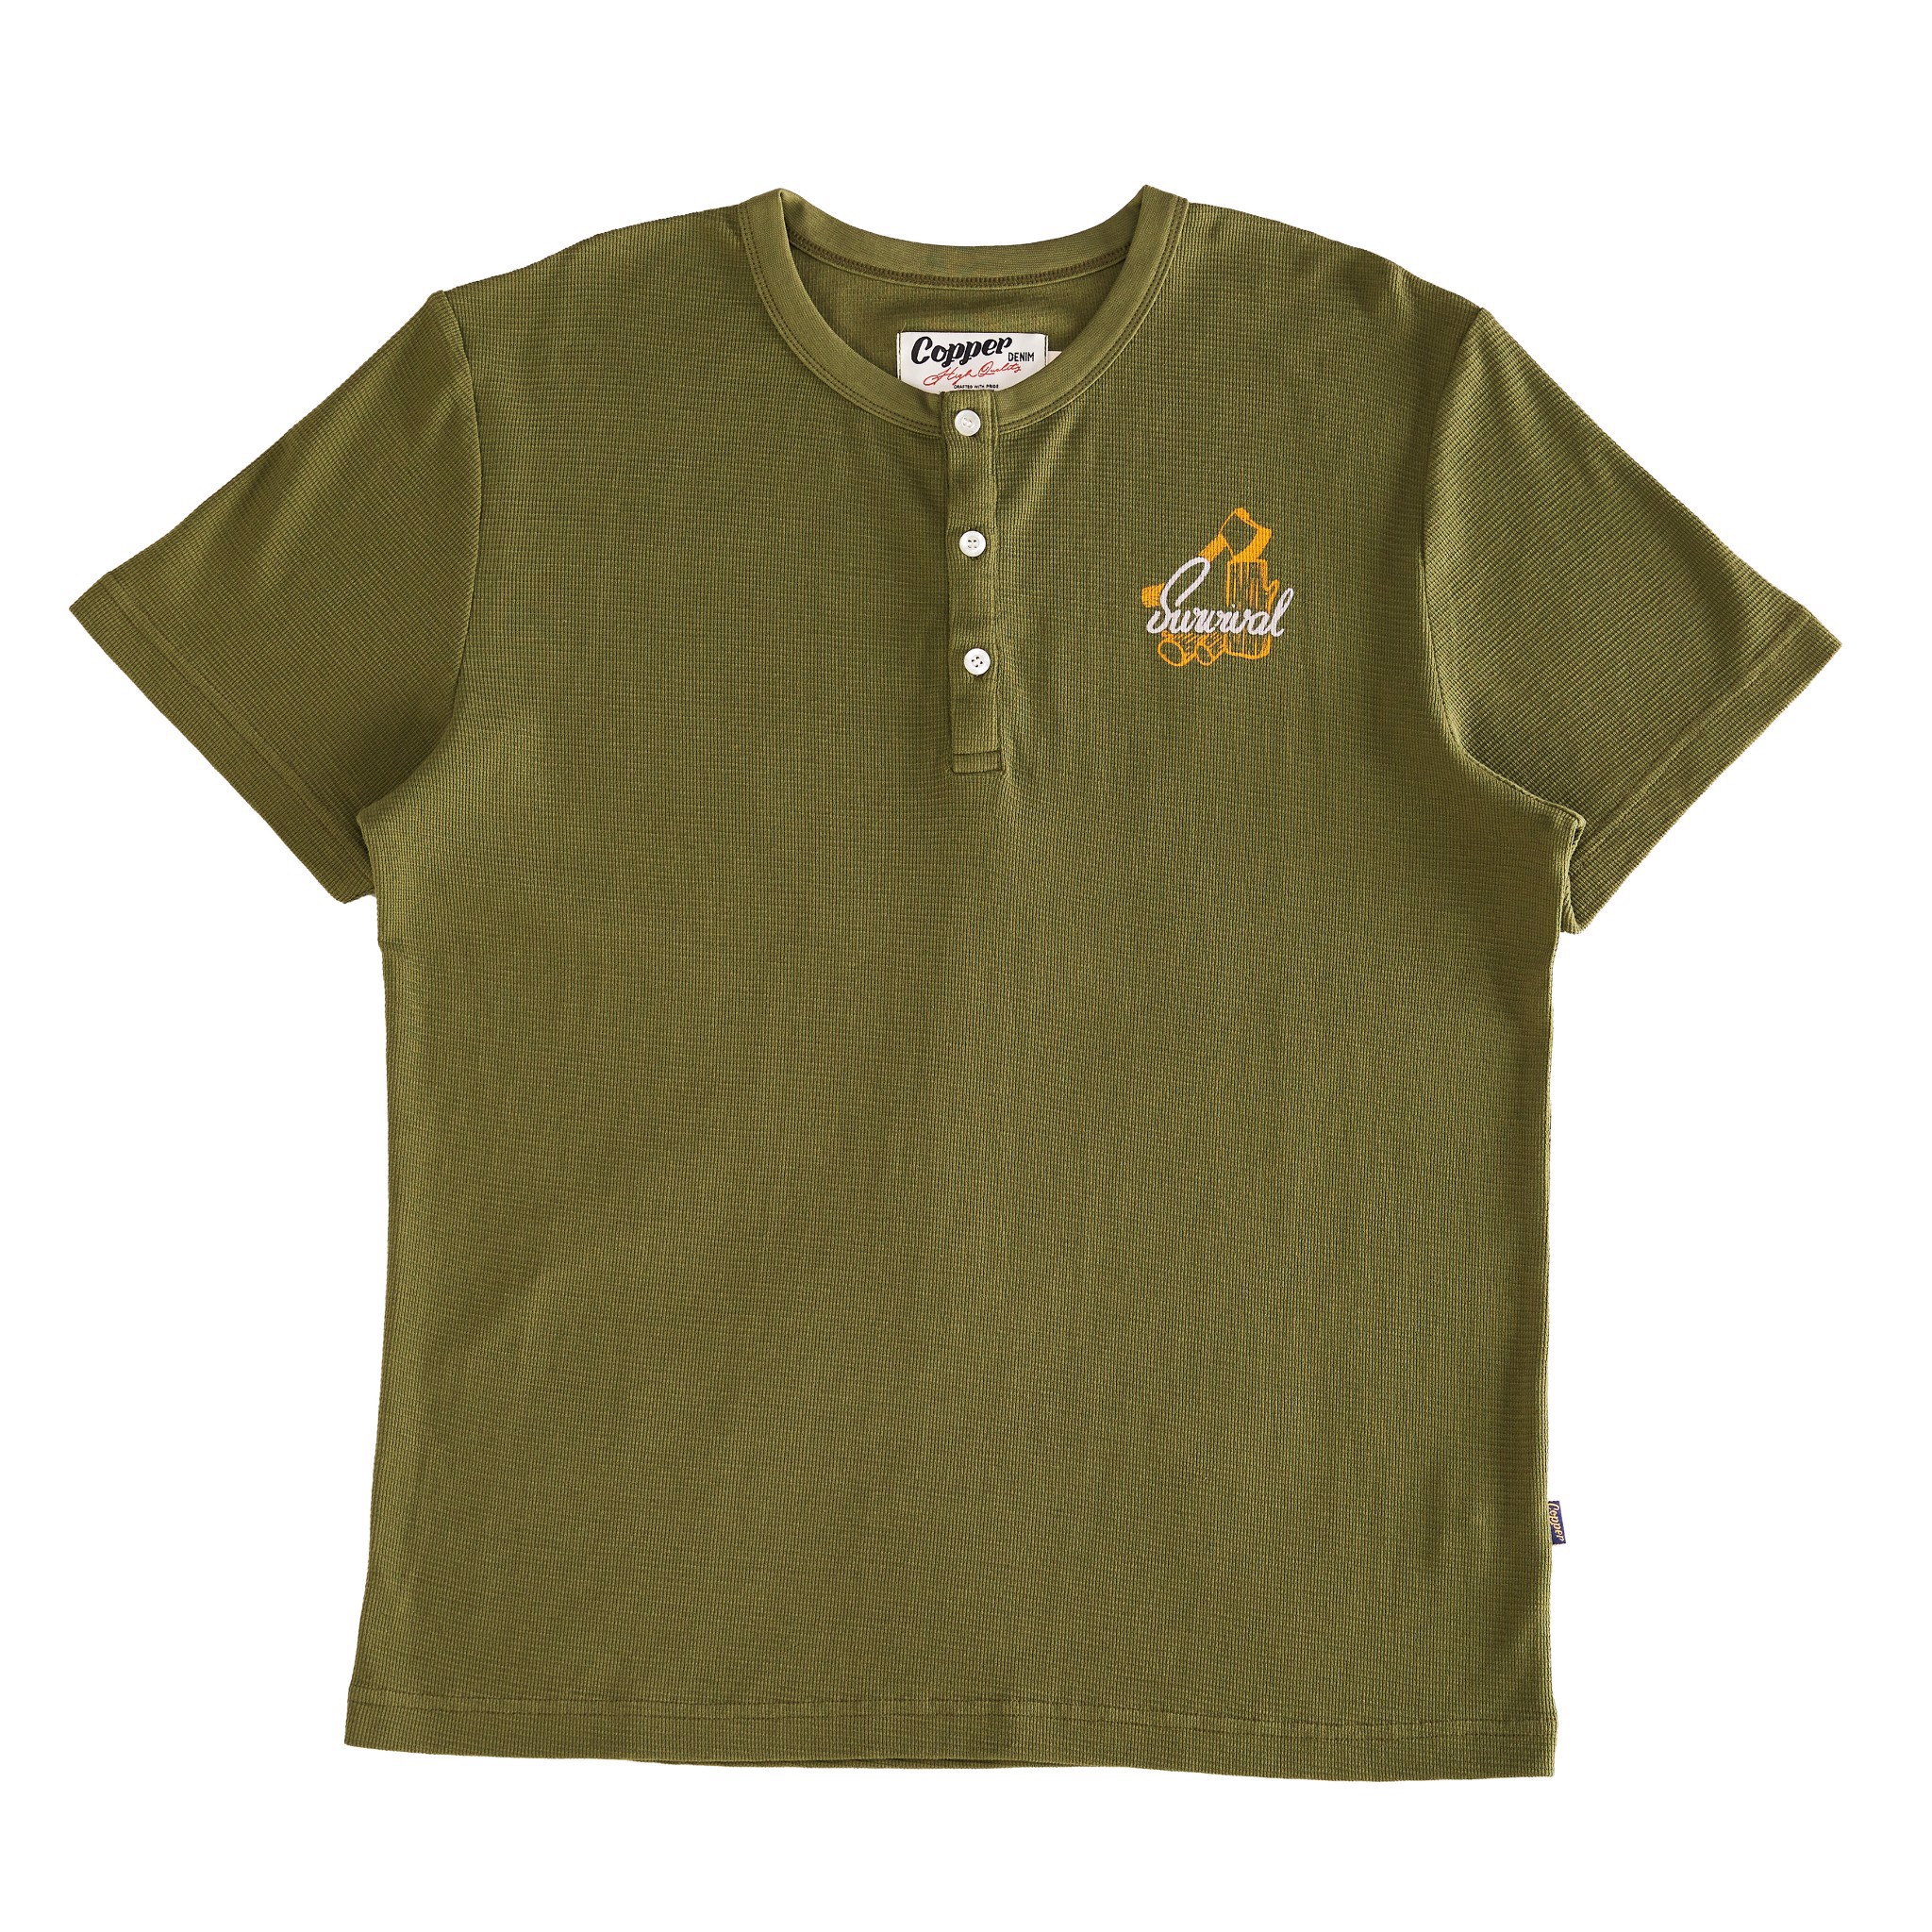 Copper Survival Leaf-Green Waffle Short Sleeves - Cổ Trụ